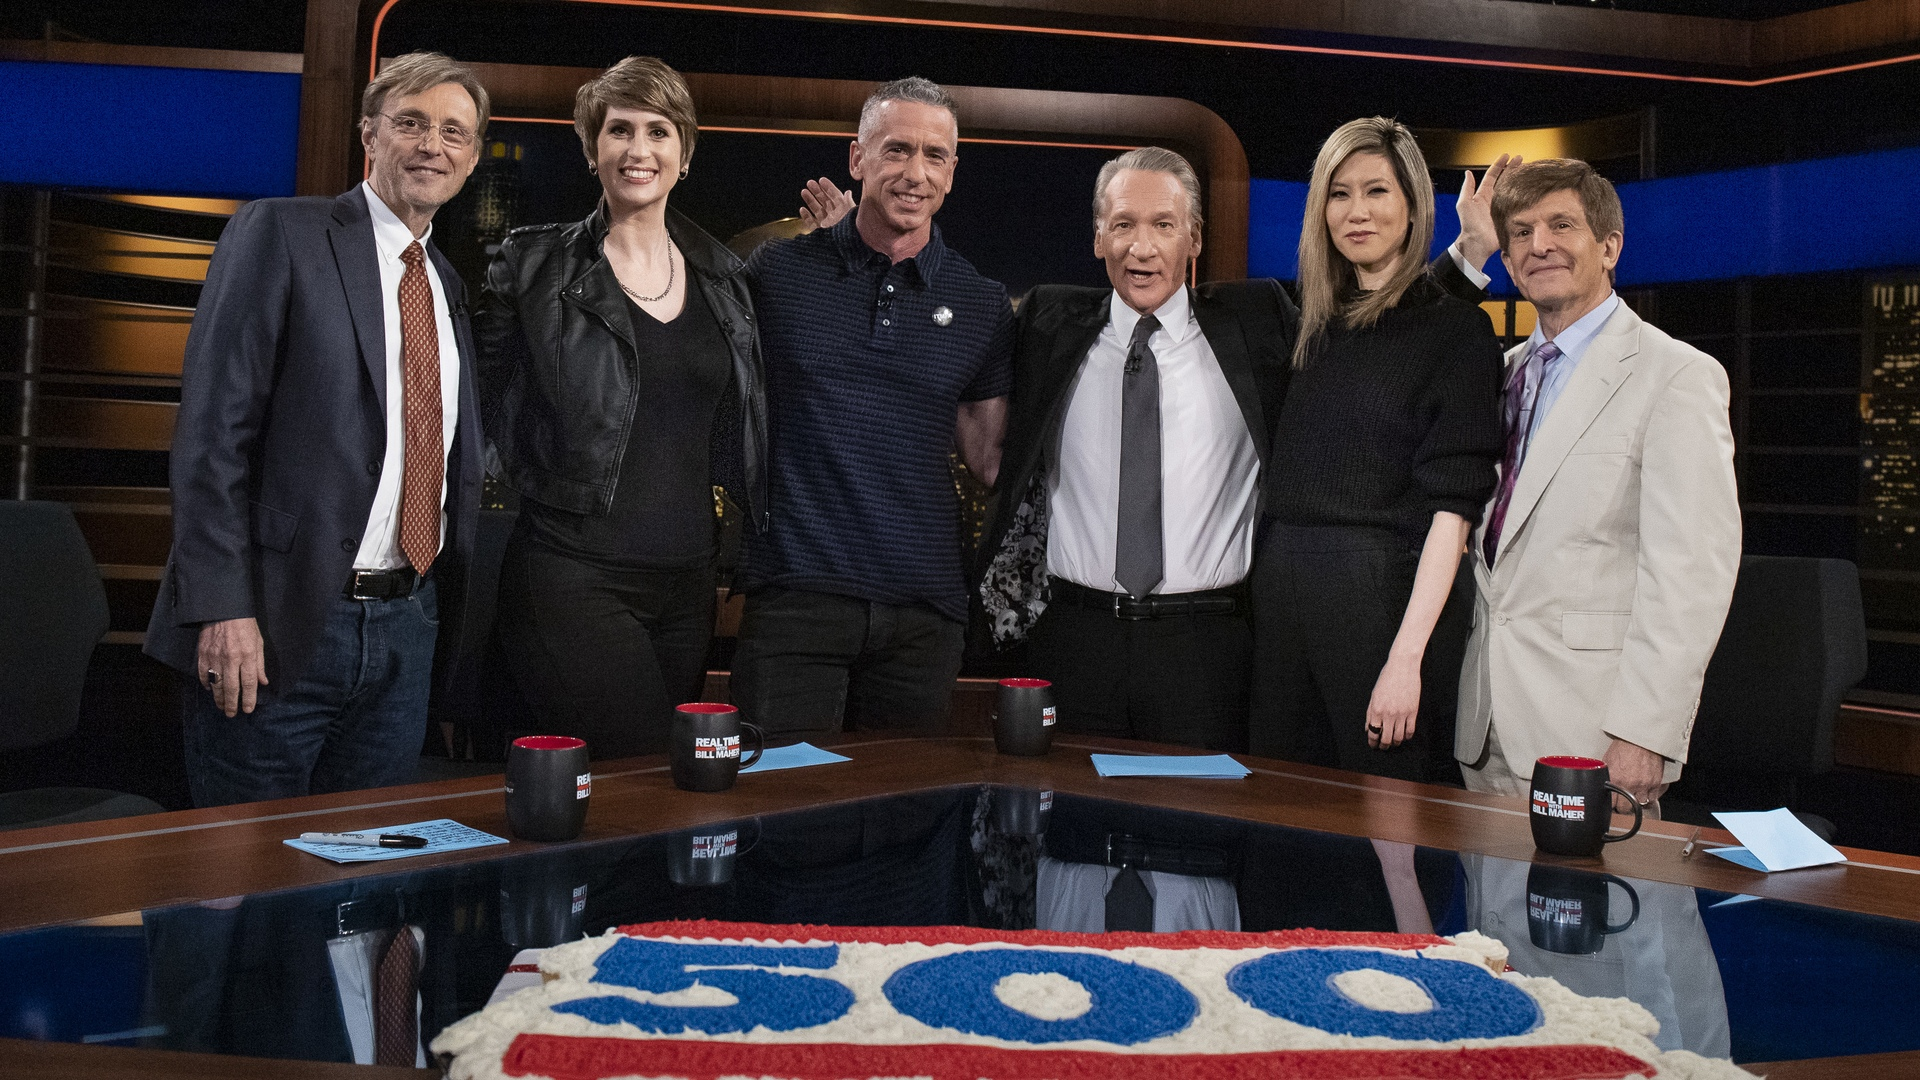 New Hbo Series 2020 Real Time with Bill Maher   Official Website for the HBO Series